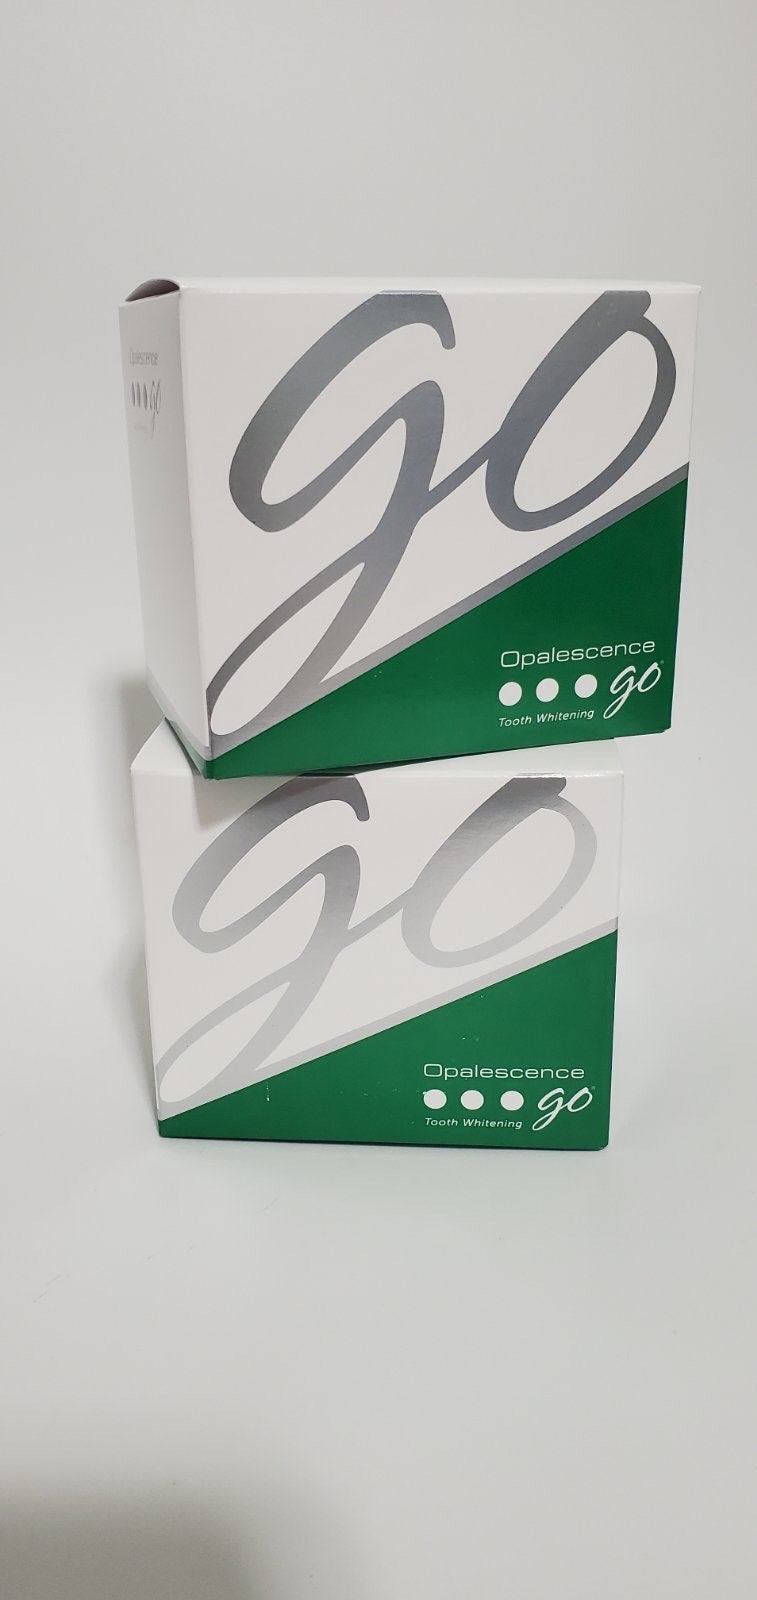 Opalescence Go Mint 15% Tooth Whitening